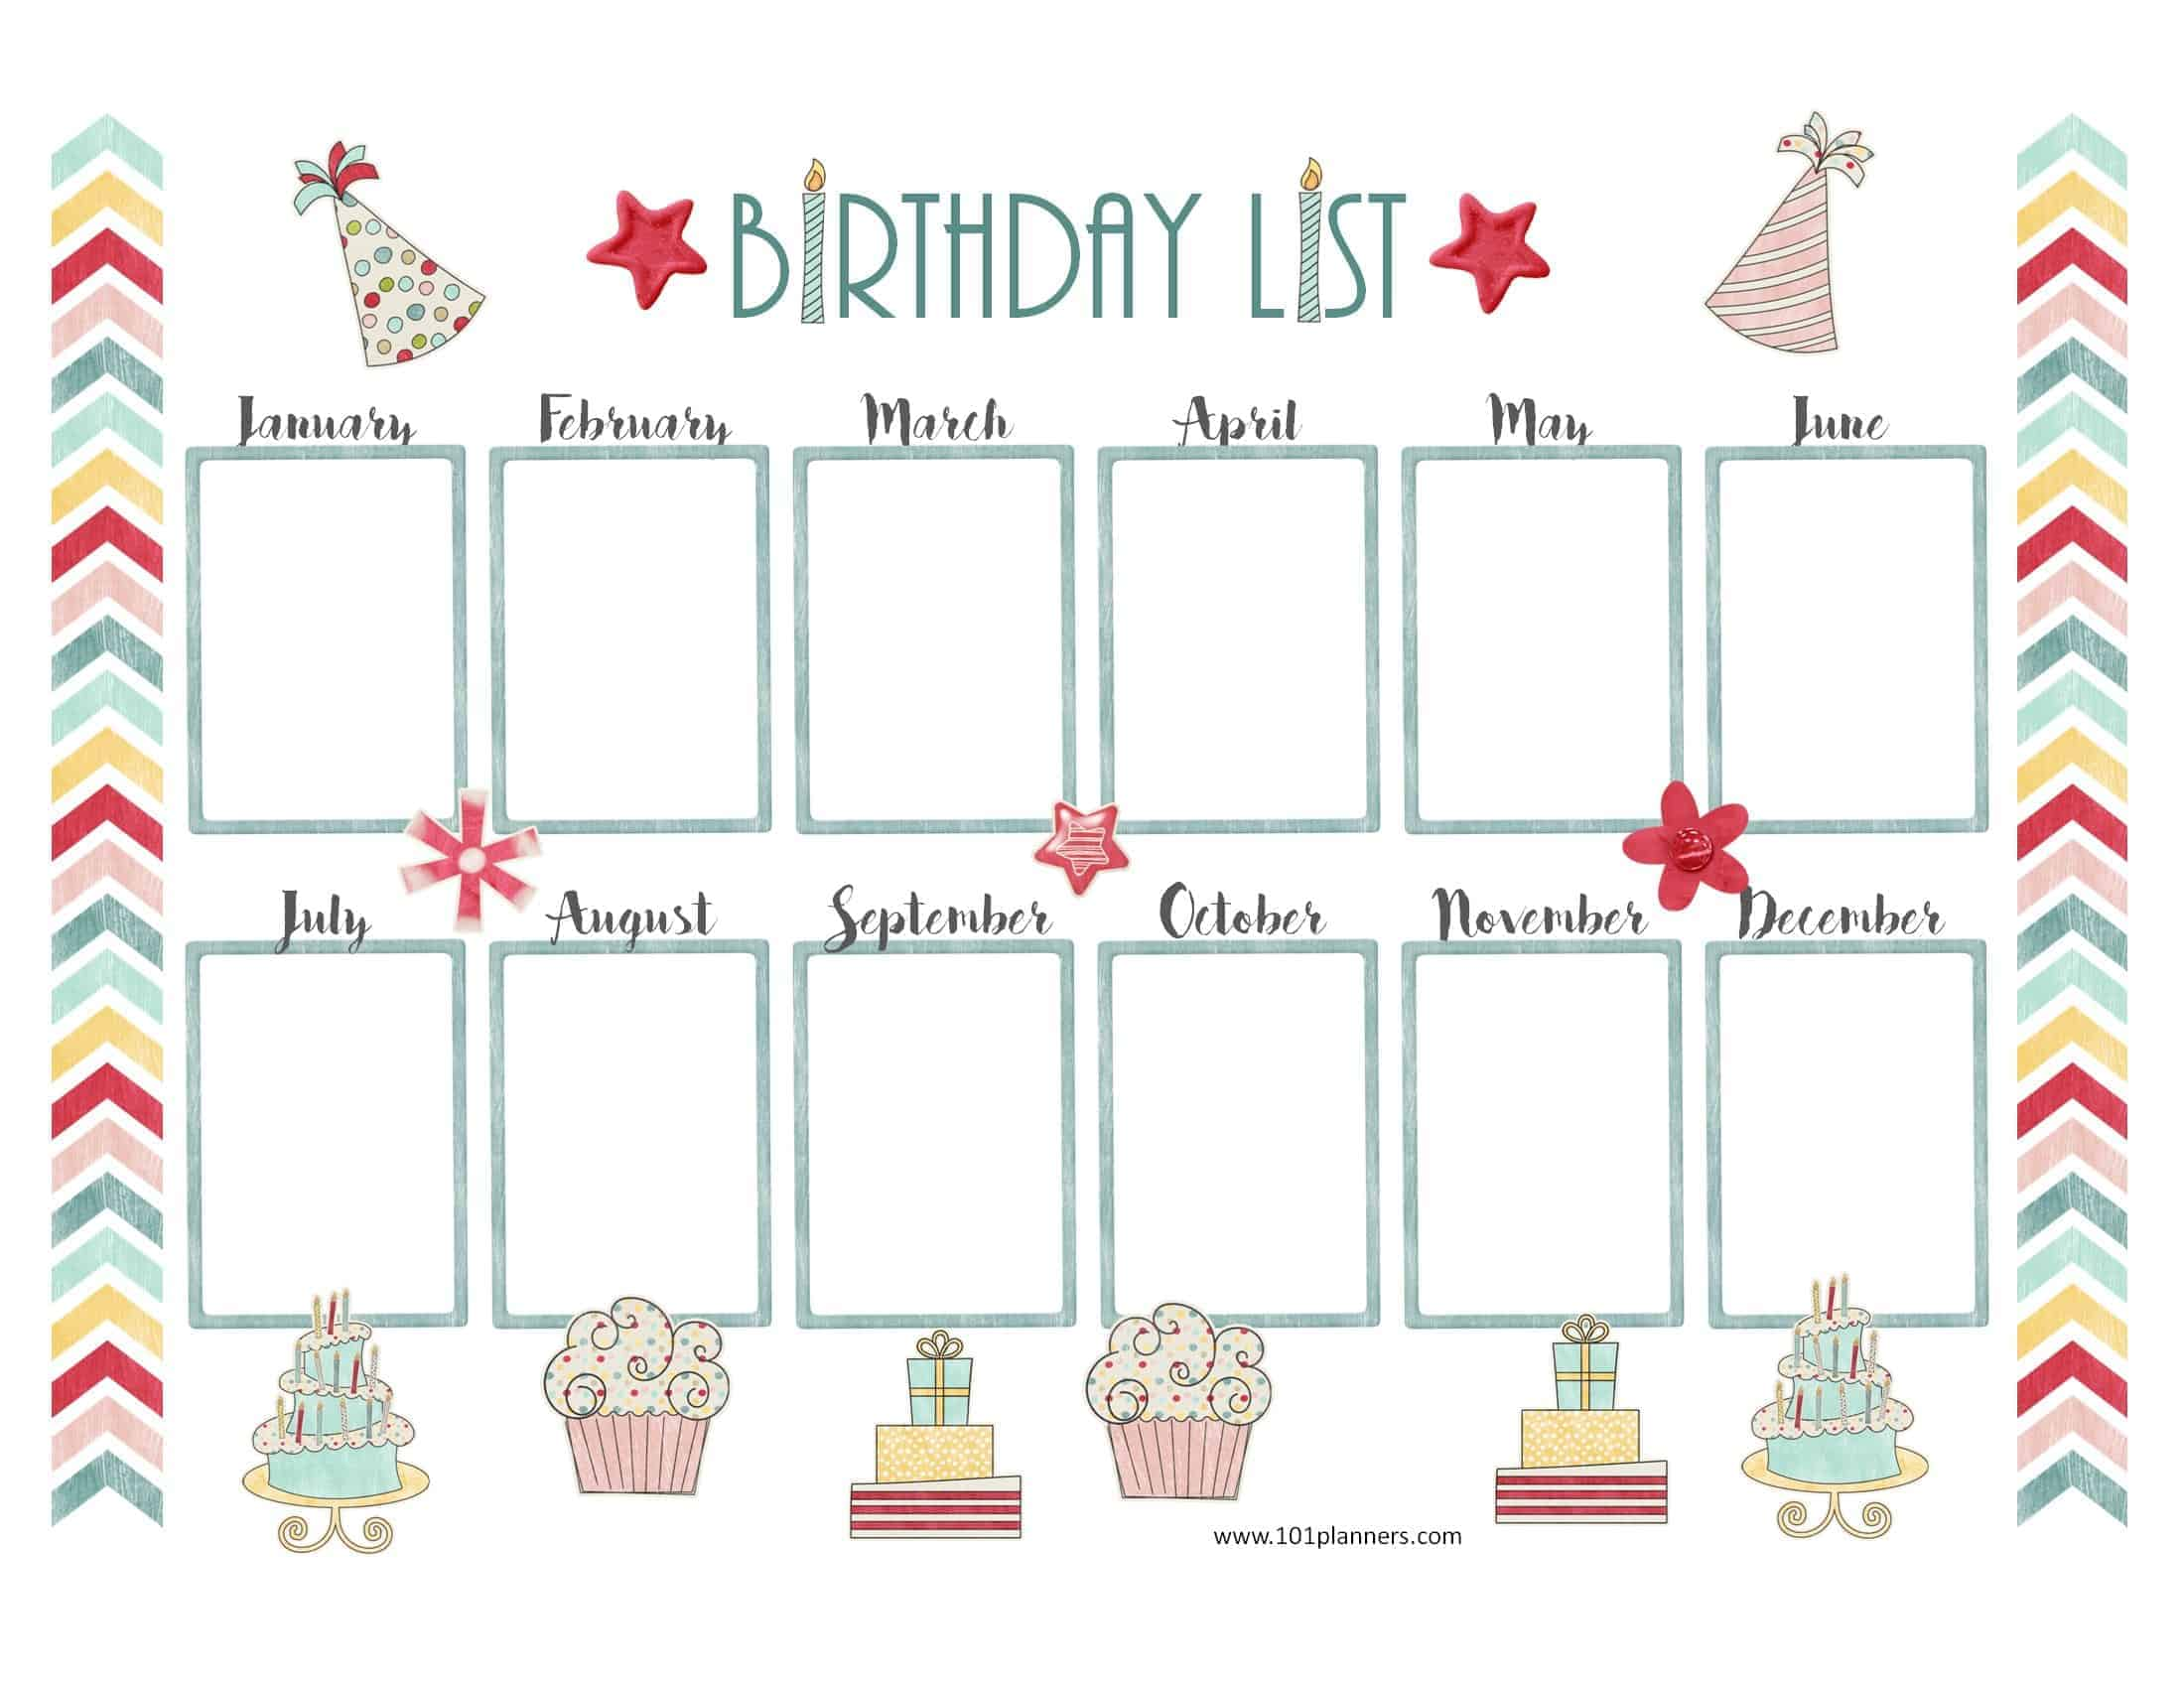 graphic regarding Birthday List Printable referred to as Absolutely free Birthday Calendar Printable Customizable Quite a few